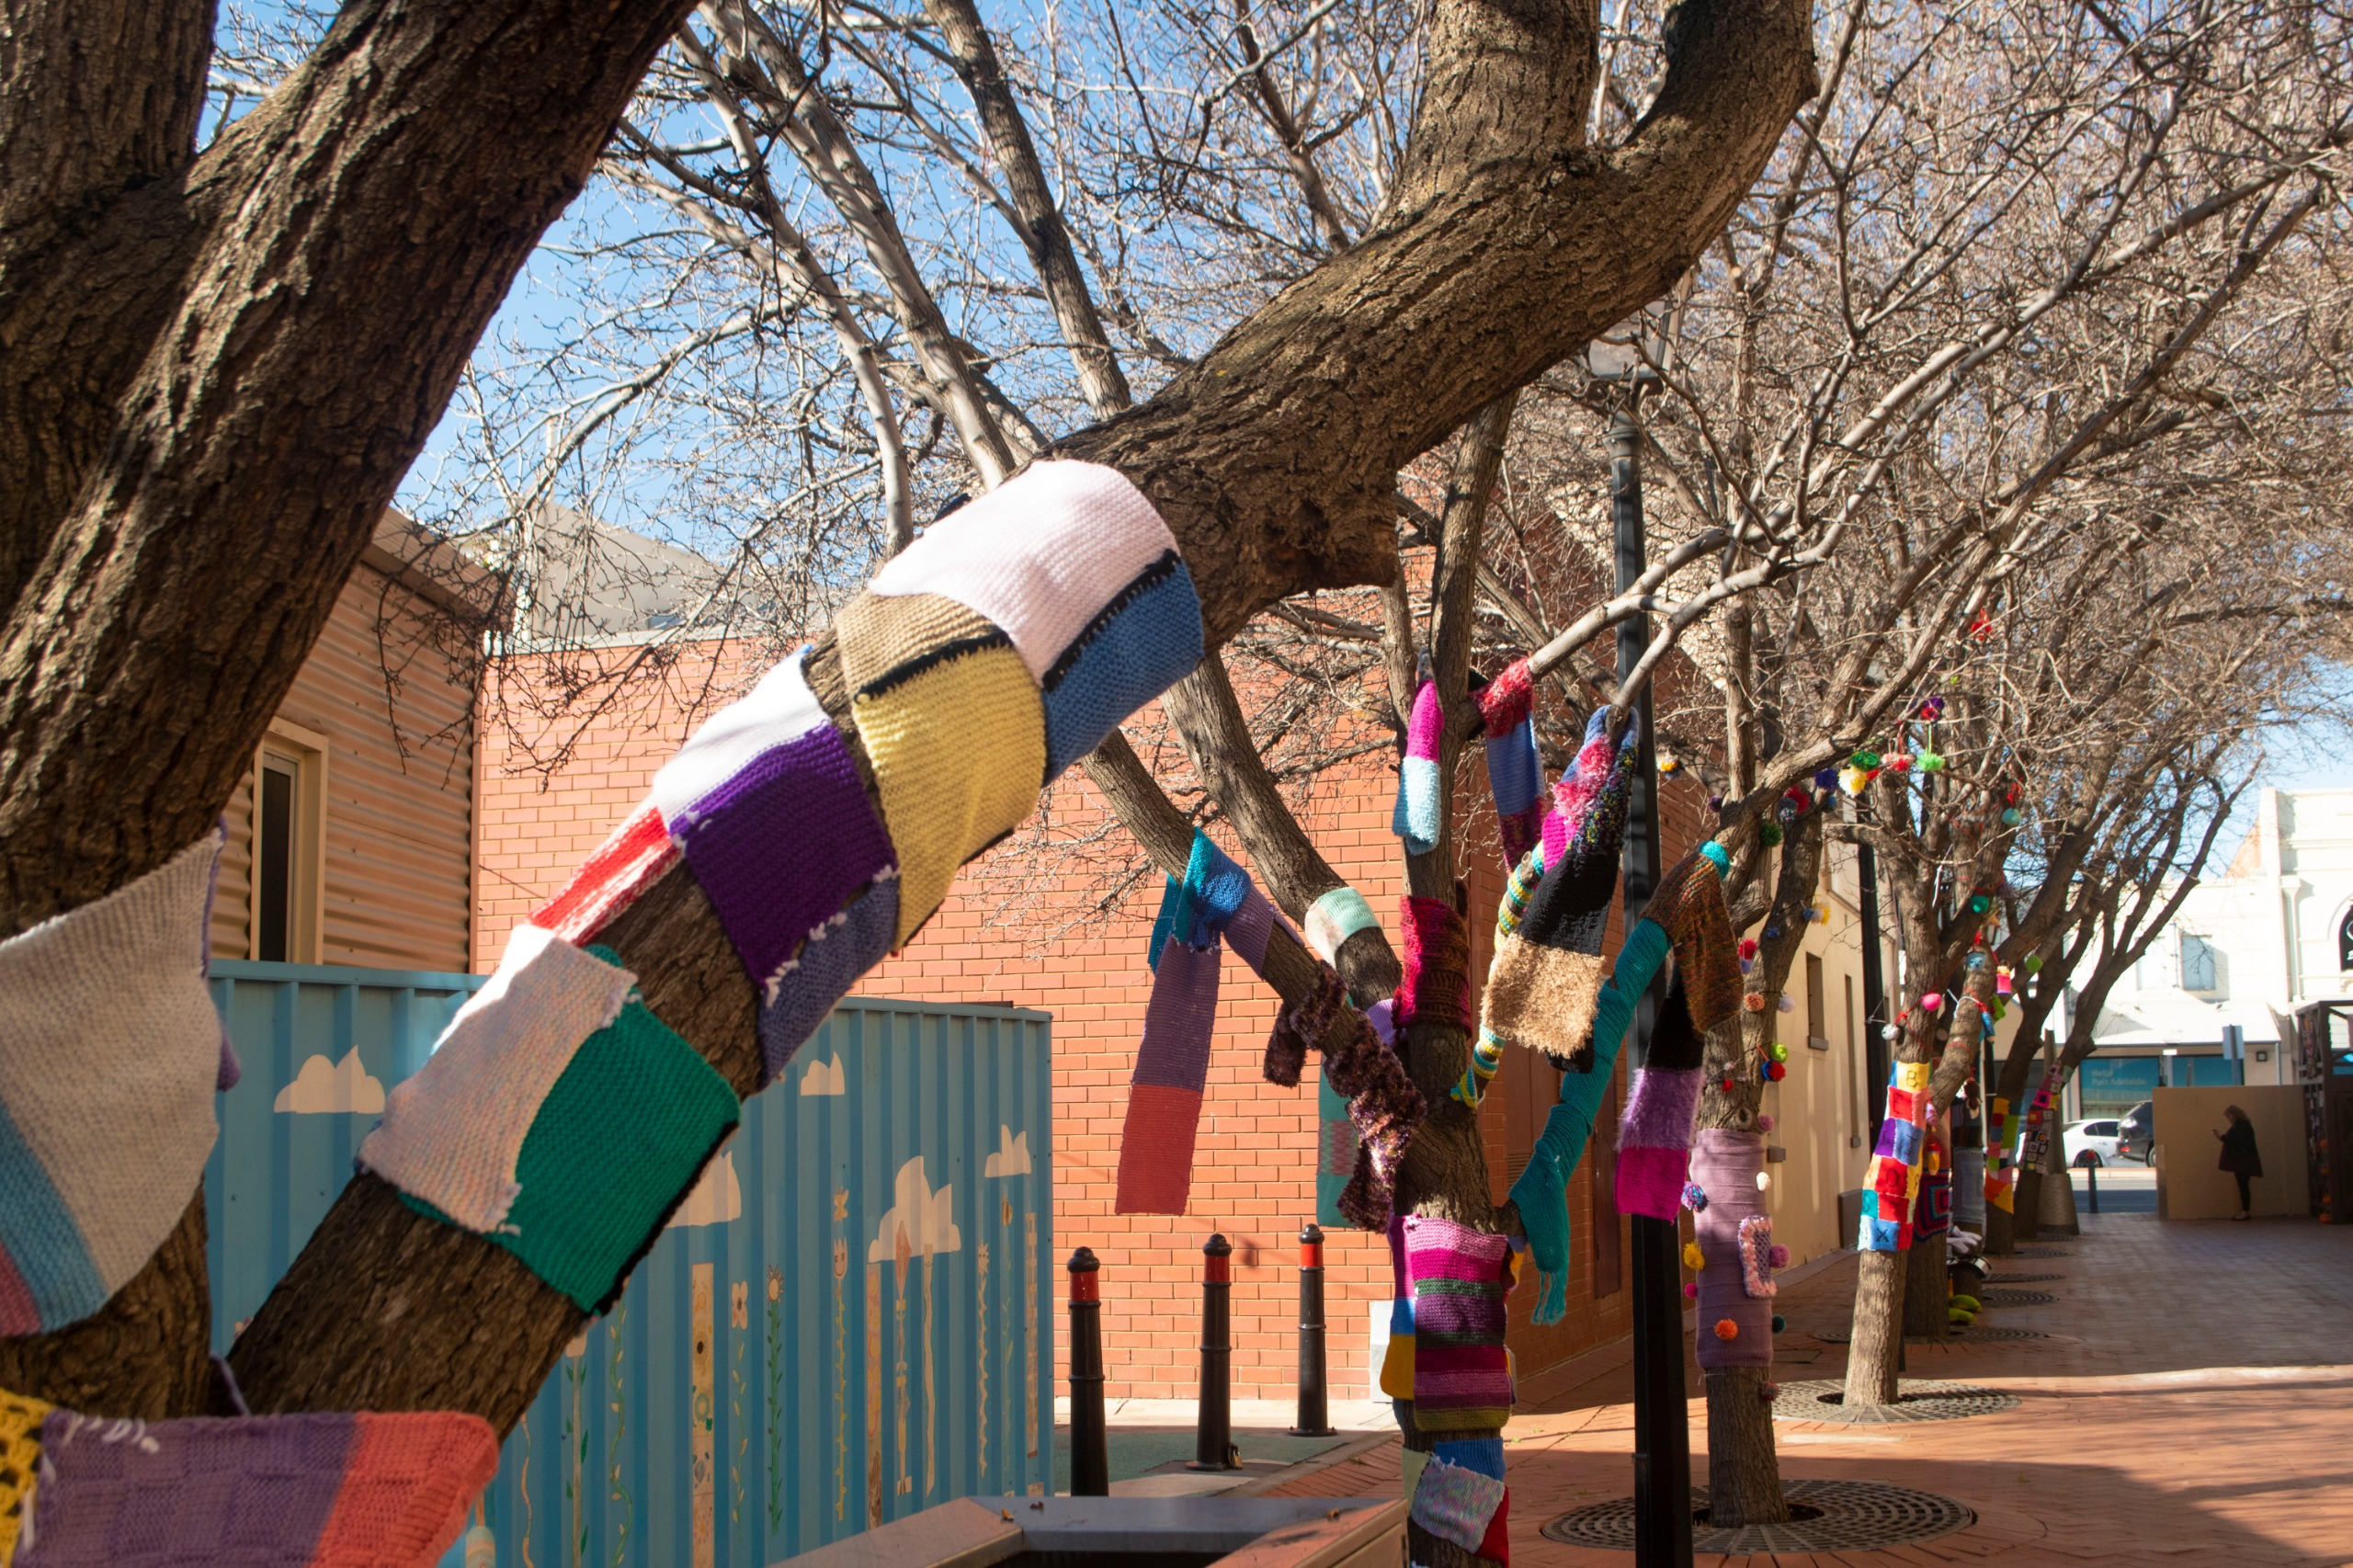 Street trees with colourful yarn crocheted around the trunks.